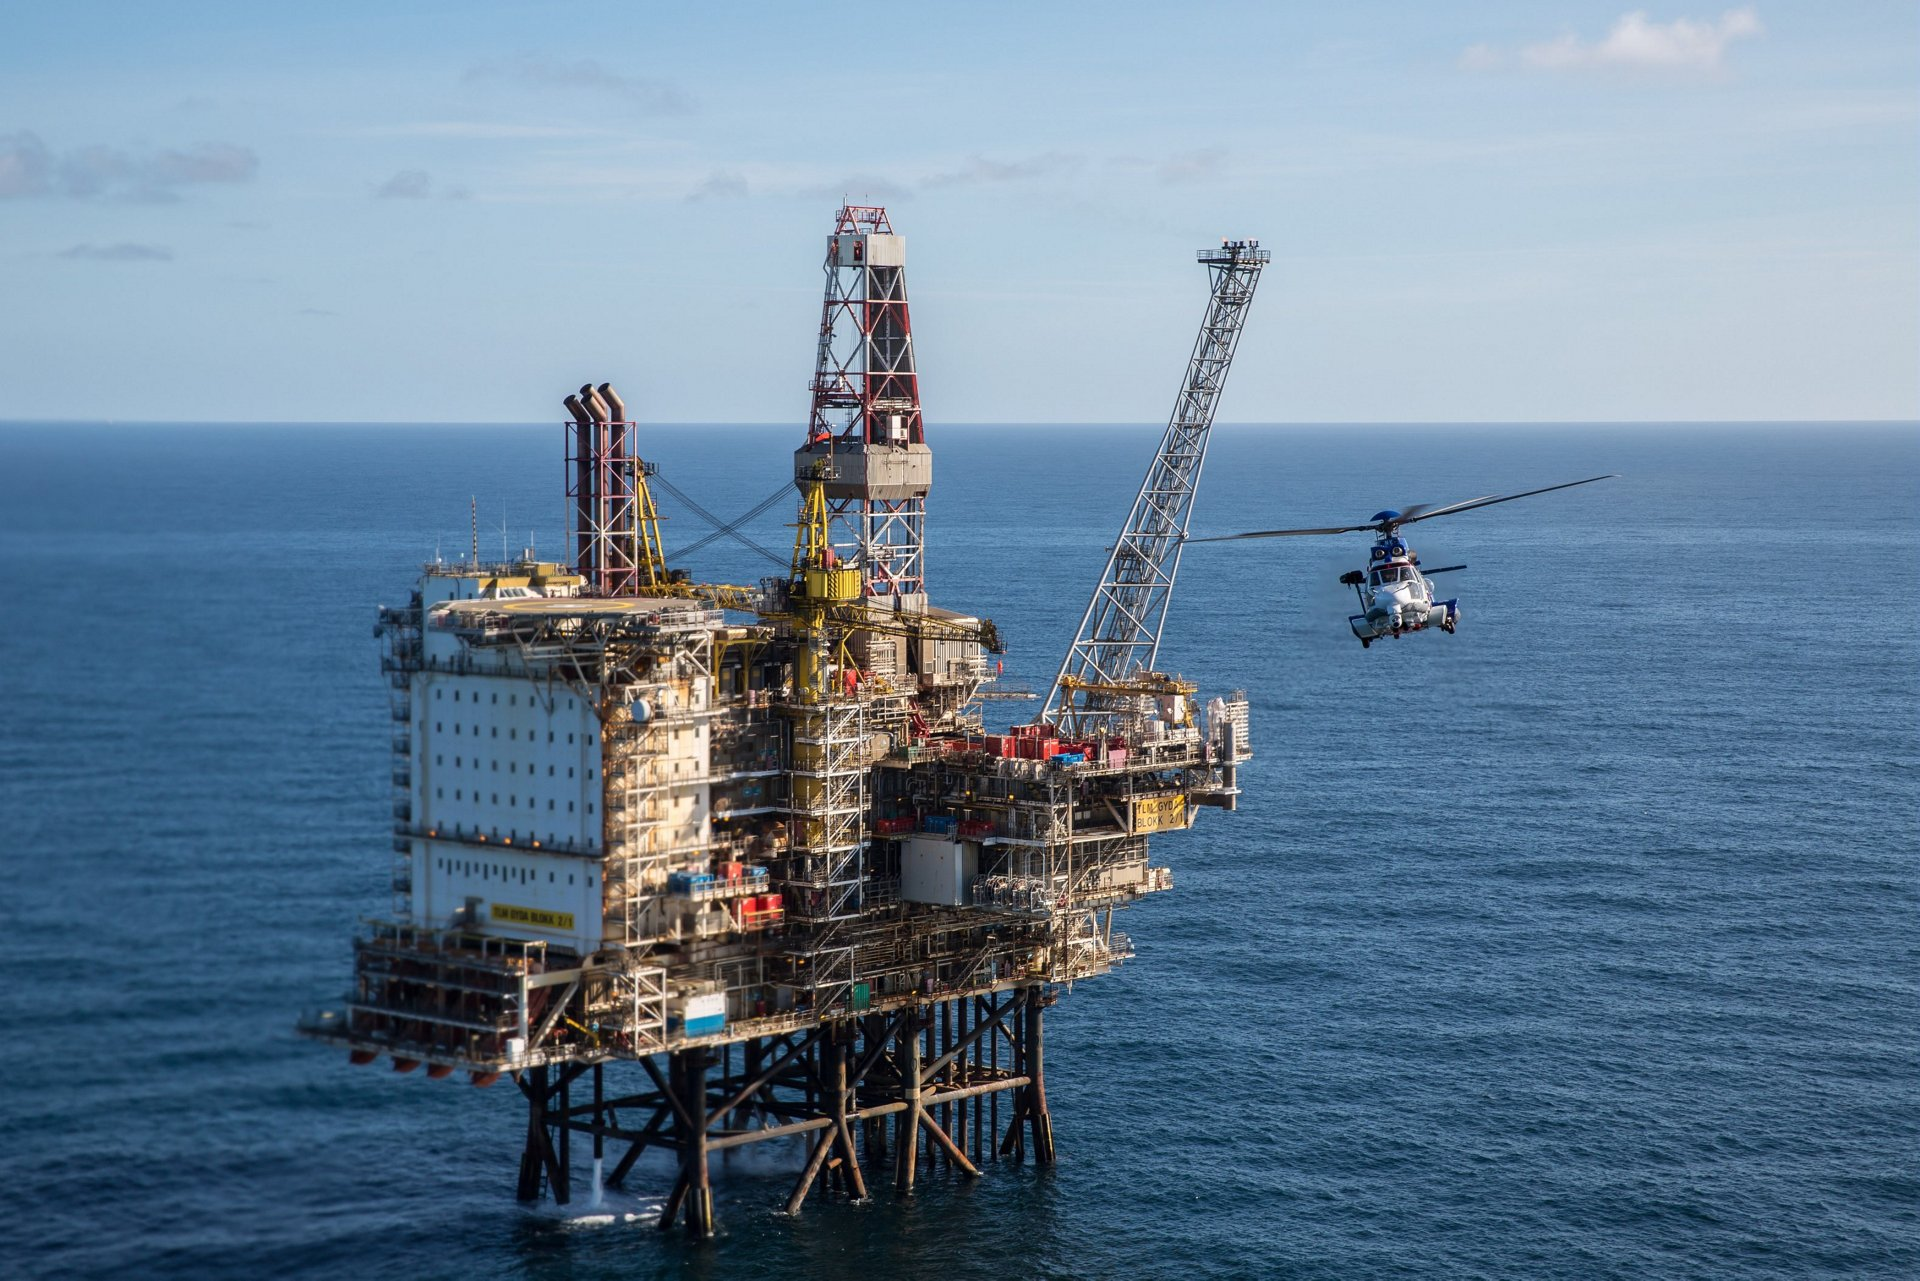 Certification of the Rig'N Fly automatic oil platform approach mode for the H225